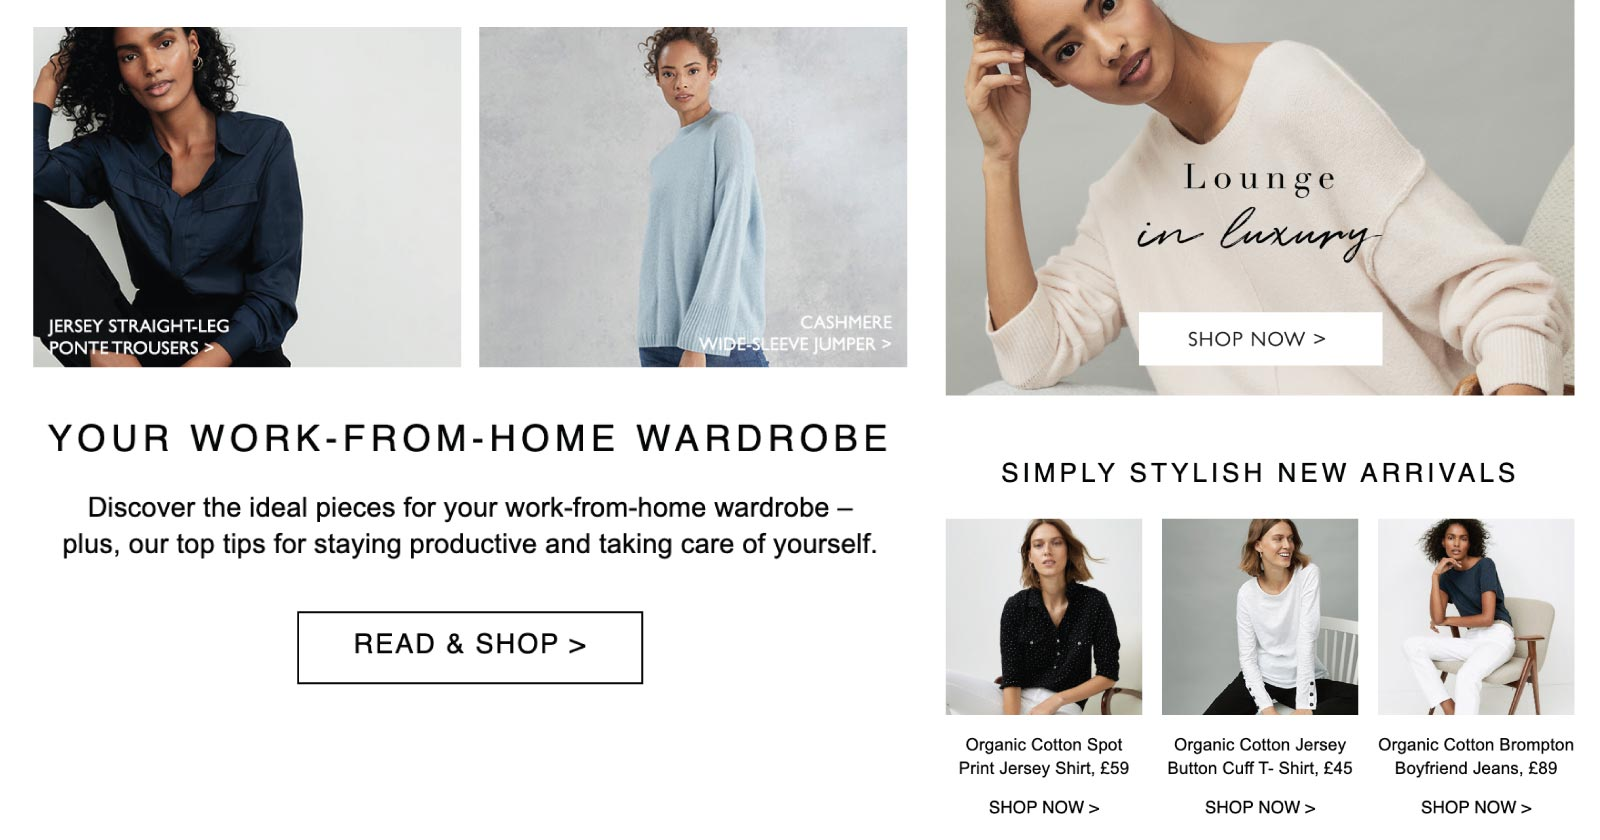 Getting Your Brand Message Right in Times of Crisis - The White Company